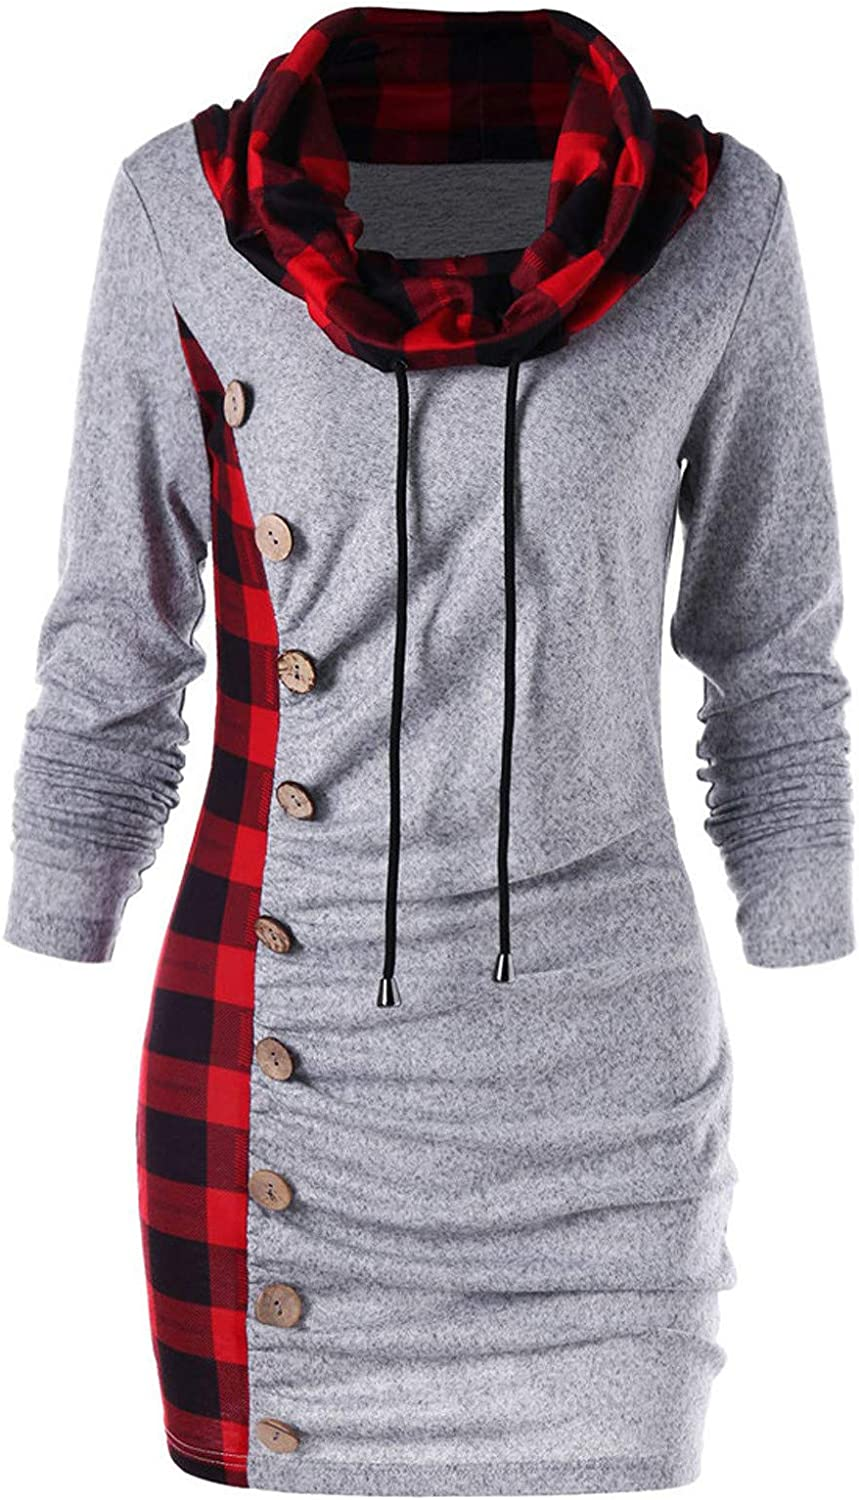 Womens Fashion Casual Funnel Neck Check Contrast Lapel Open Front Plaid Vest Cardigan Coat with